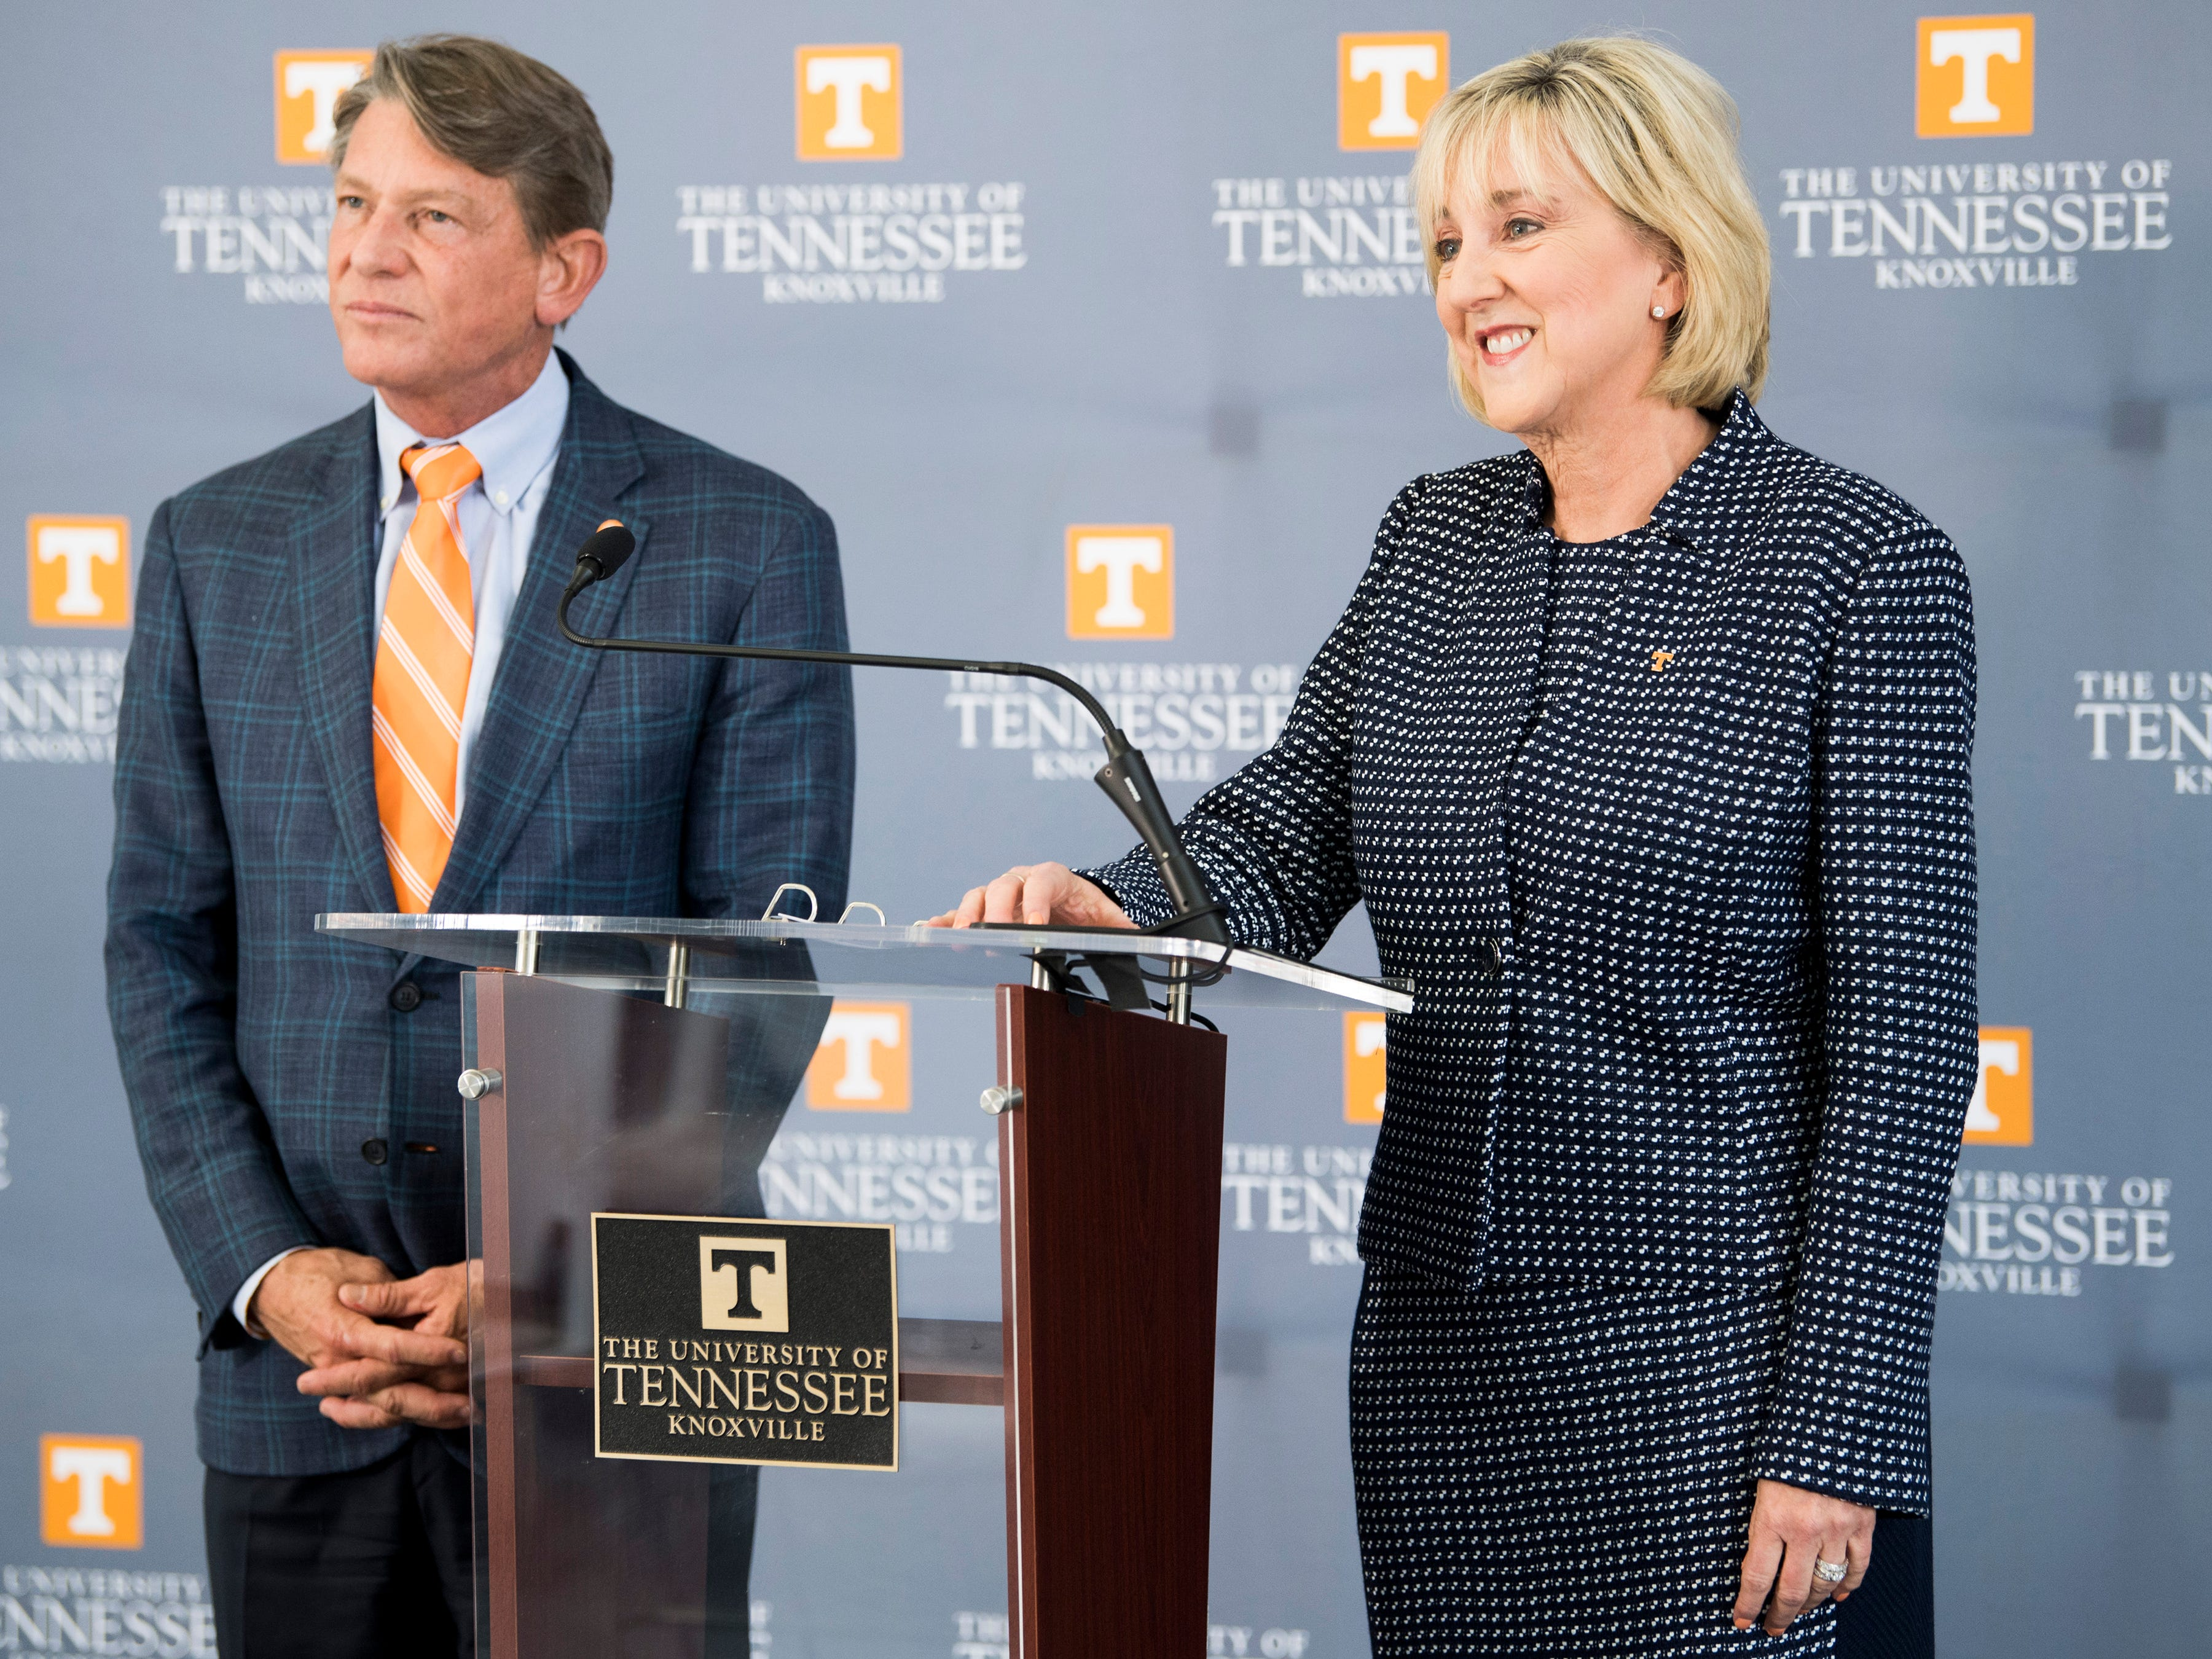 """""""We connected from day one,"""" Randy Boyd told Knox News about his relationship with Donde Plowman. Boyd and Plowman appear in person together frequently, a visible indication of the strong relationship between the University of Tennessee System and its flagship campus. Boyd introduced Plowman as the new chancellor at the Knoxville campus' Student Union on May 6, 2019."""